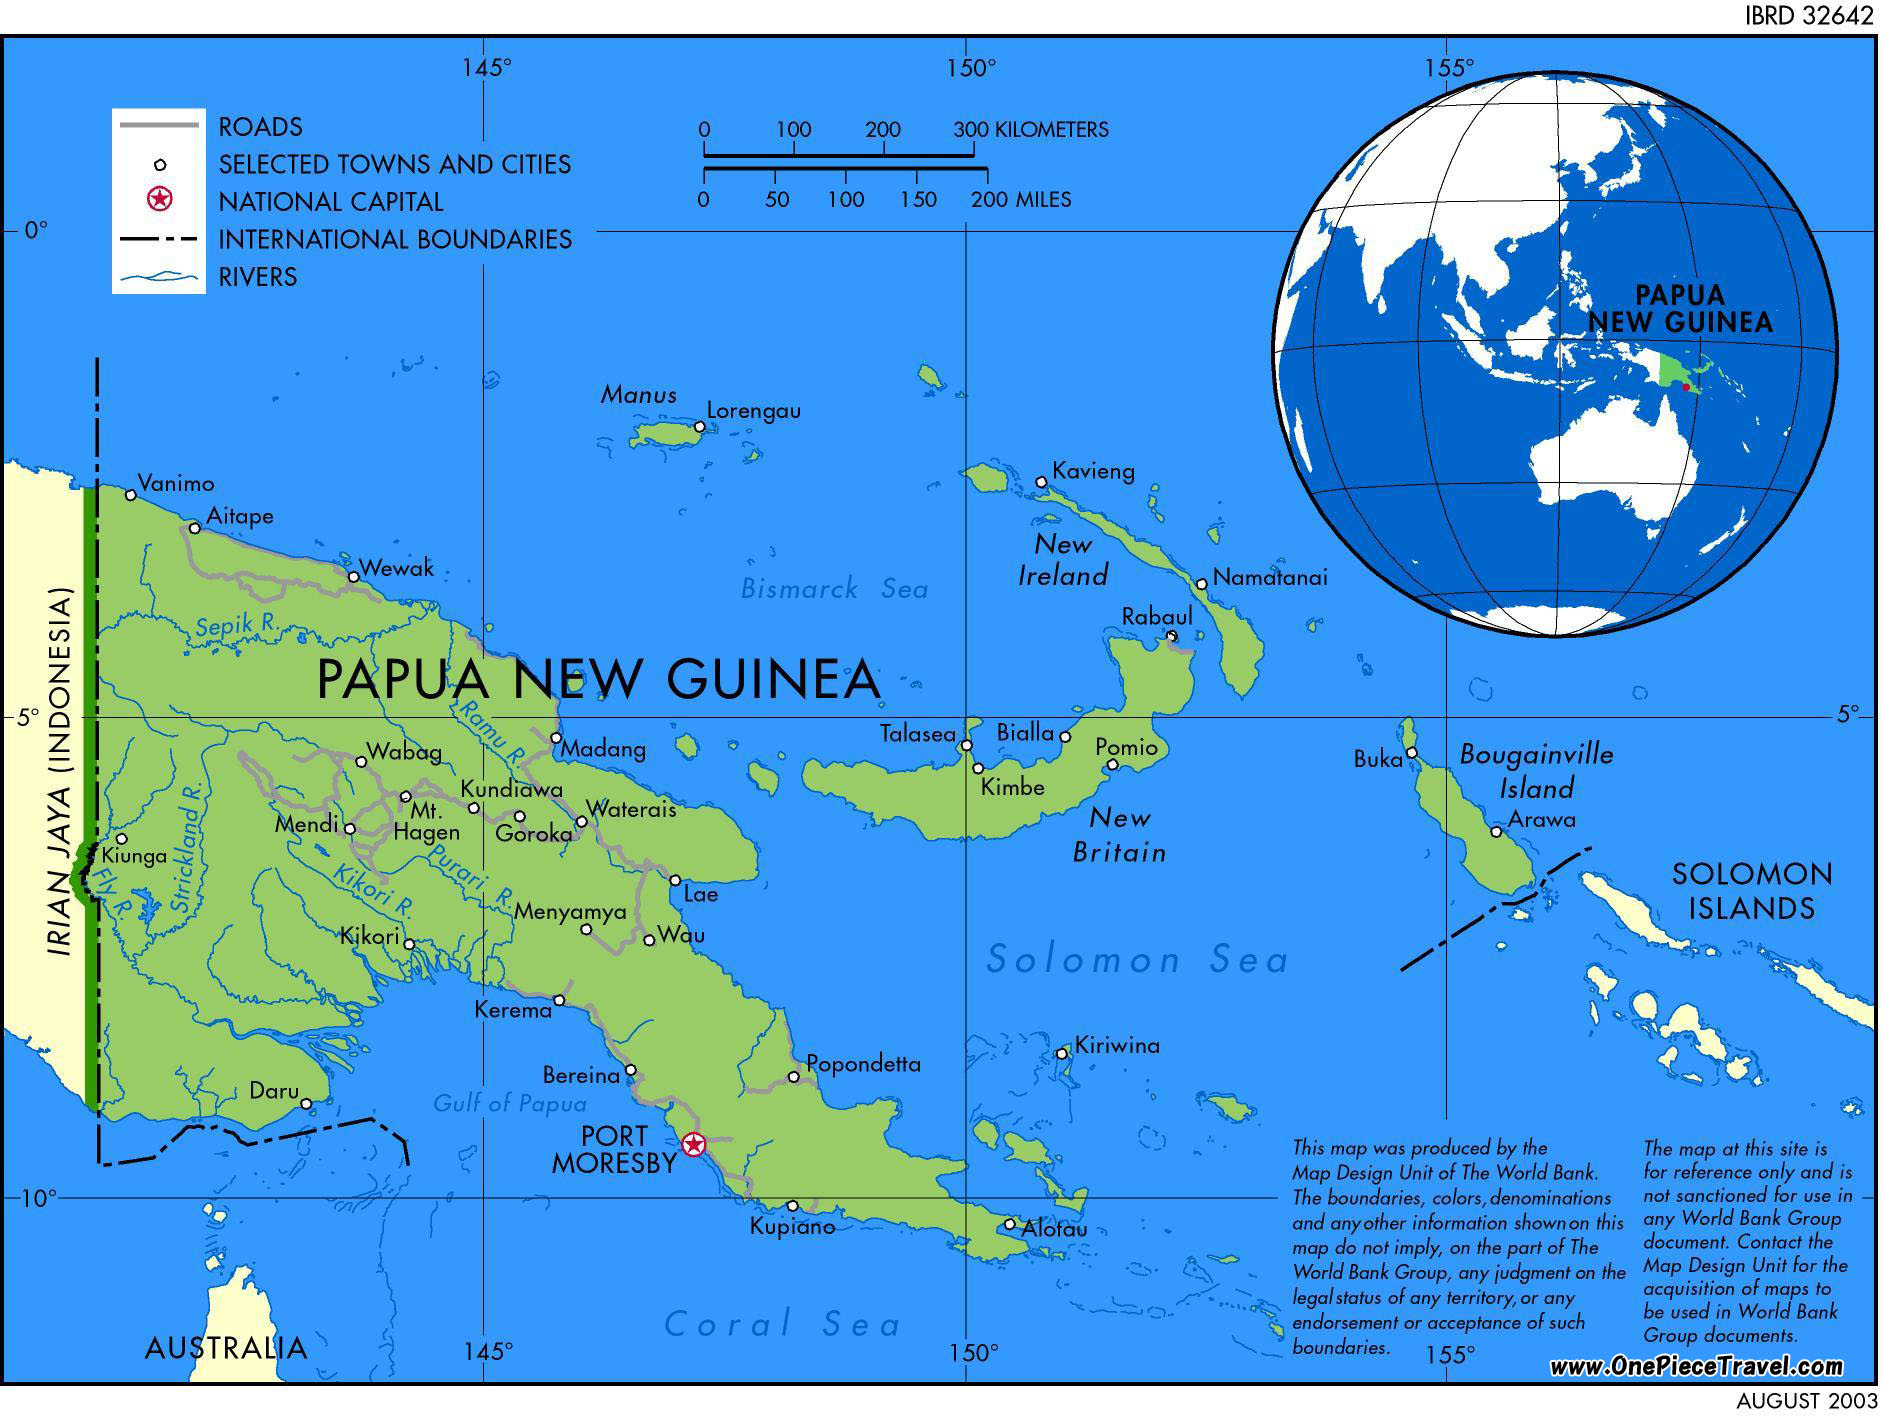 Download this Papua New Guinea Map picture